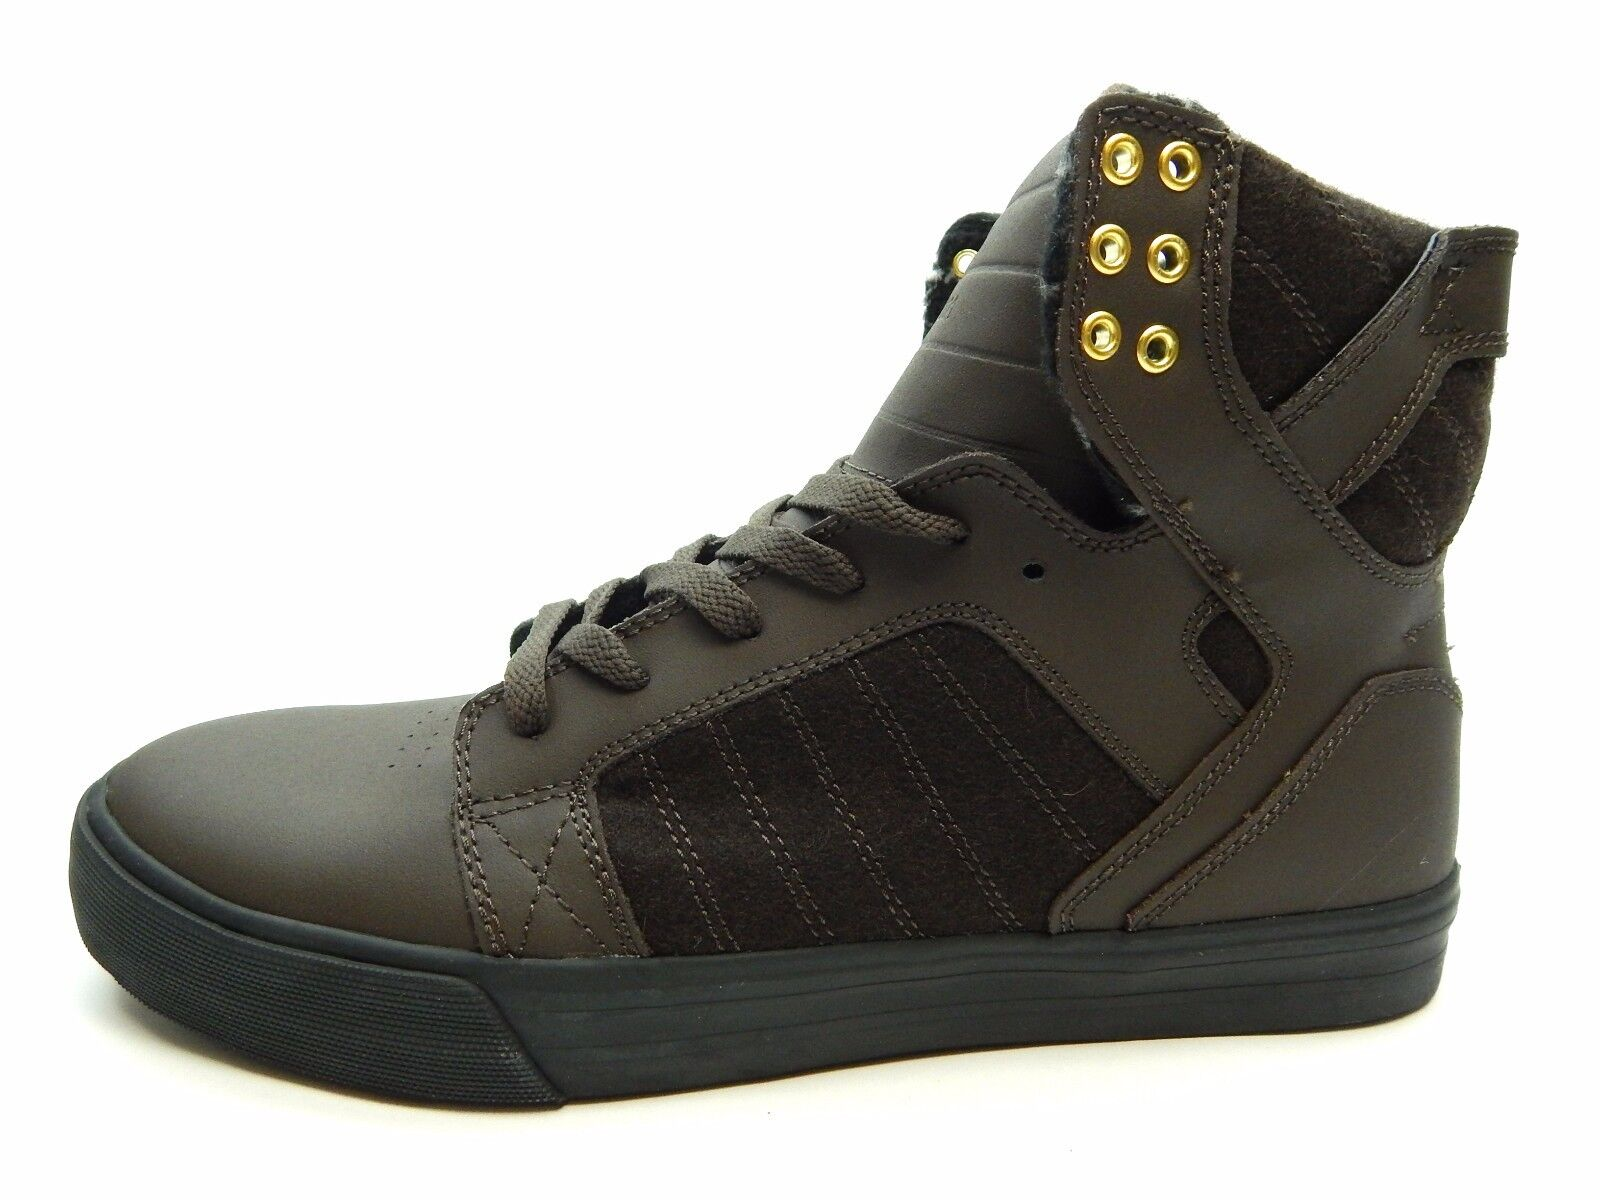 SUPRA MEN'S SKYTOP DEMITASSE BLACK MEN SHOES SIZE 7.5, 8.5 & 11.5